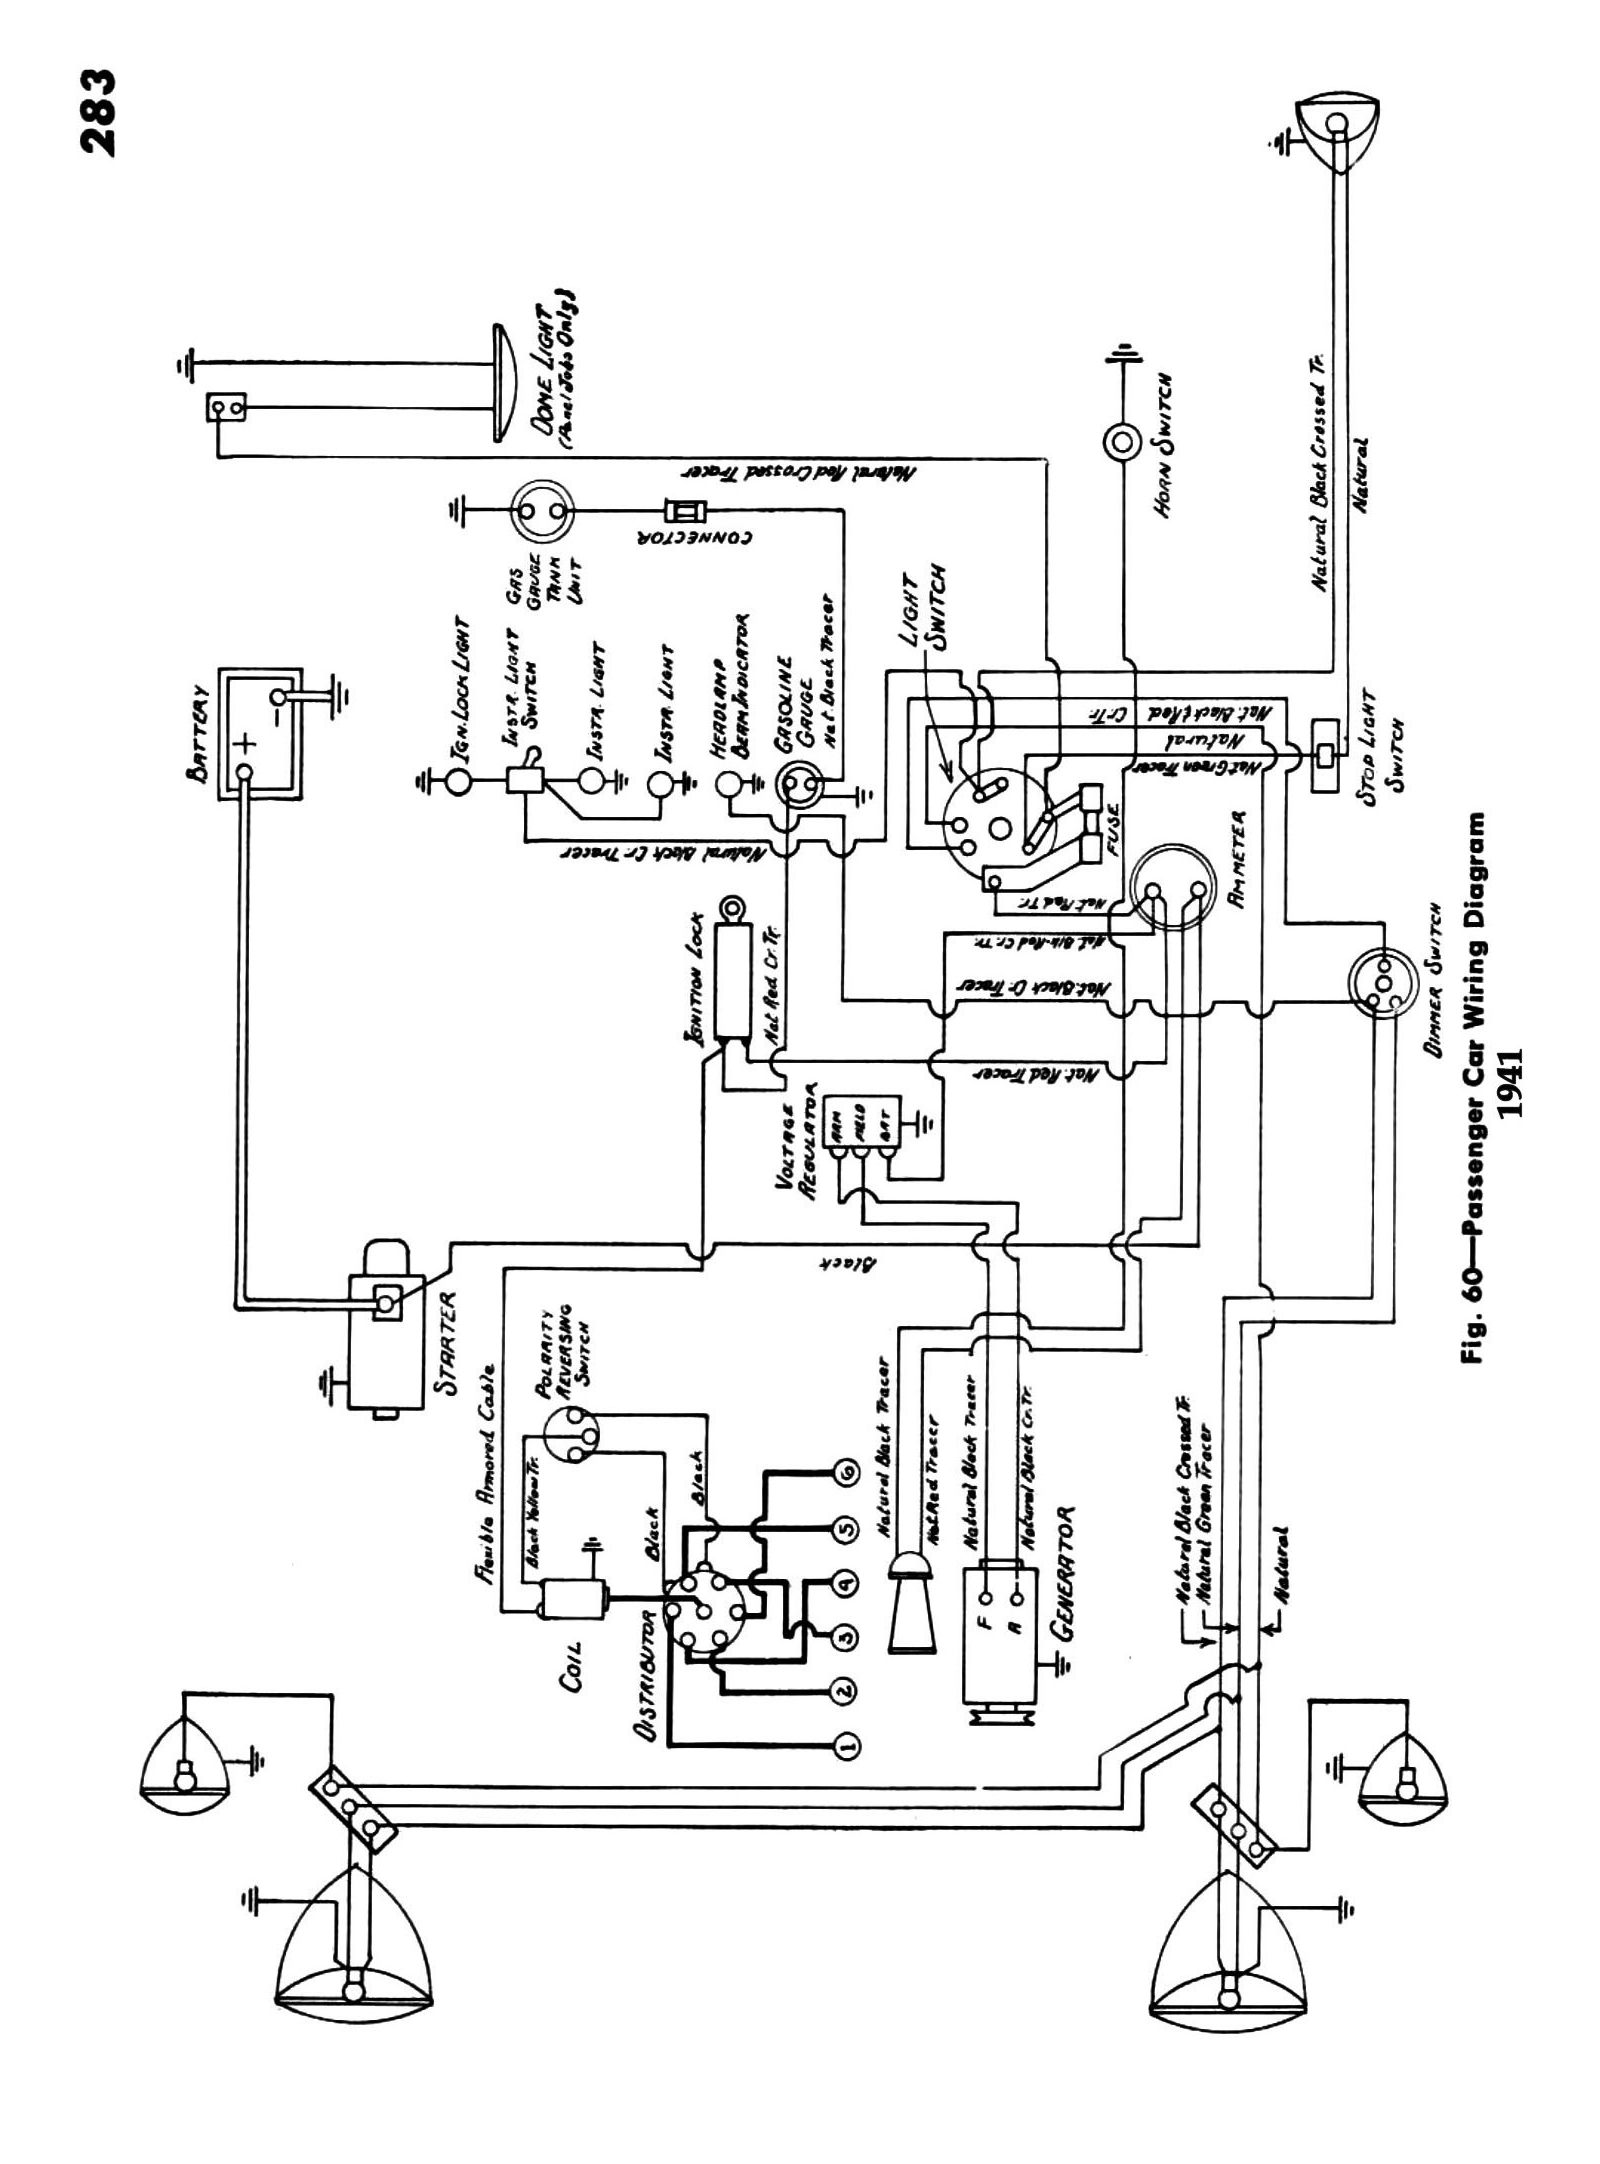 41csm283 chevy wiring diagrams GM Alternator Wiring Diagram at panicattacktreatment.co